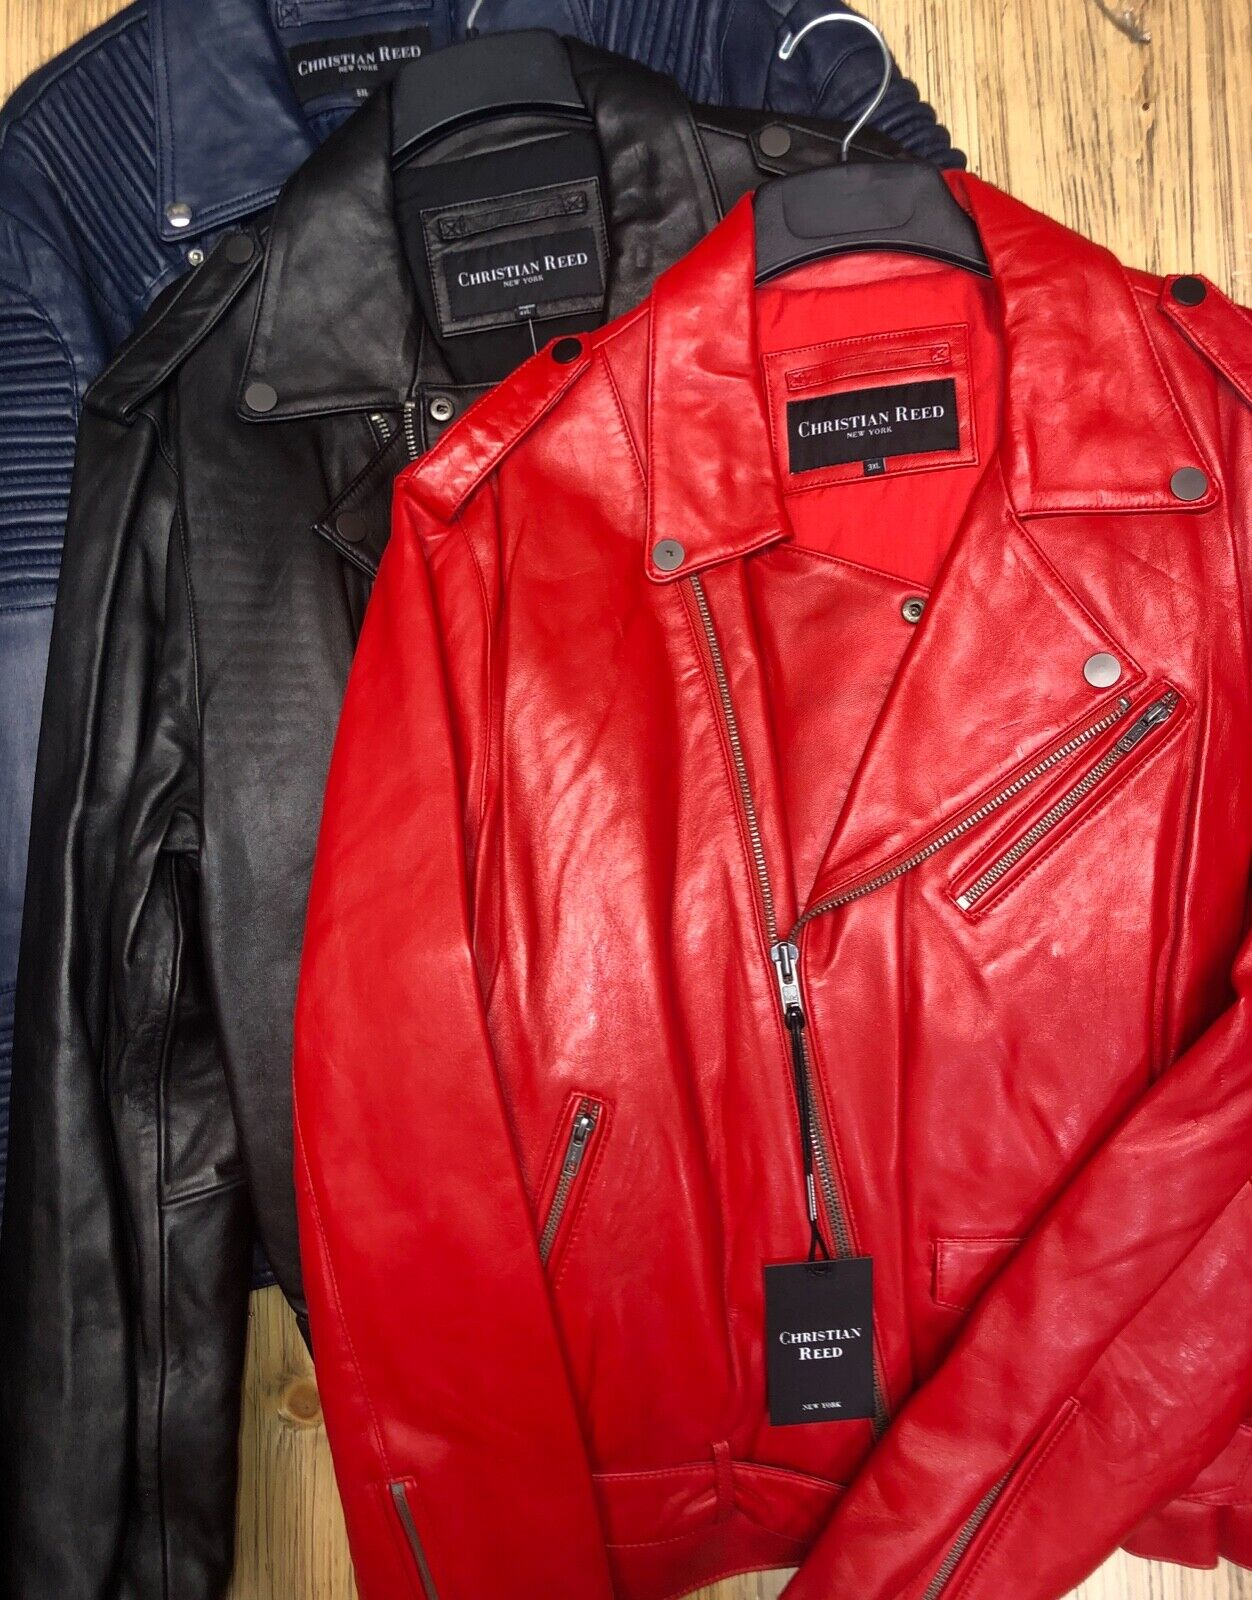 Christian Reed Leather Jackets Various Styles/Colors/Sizes N